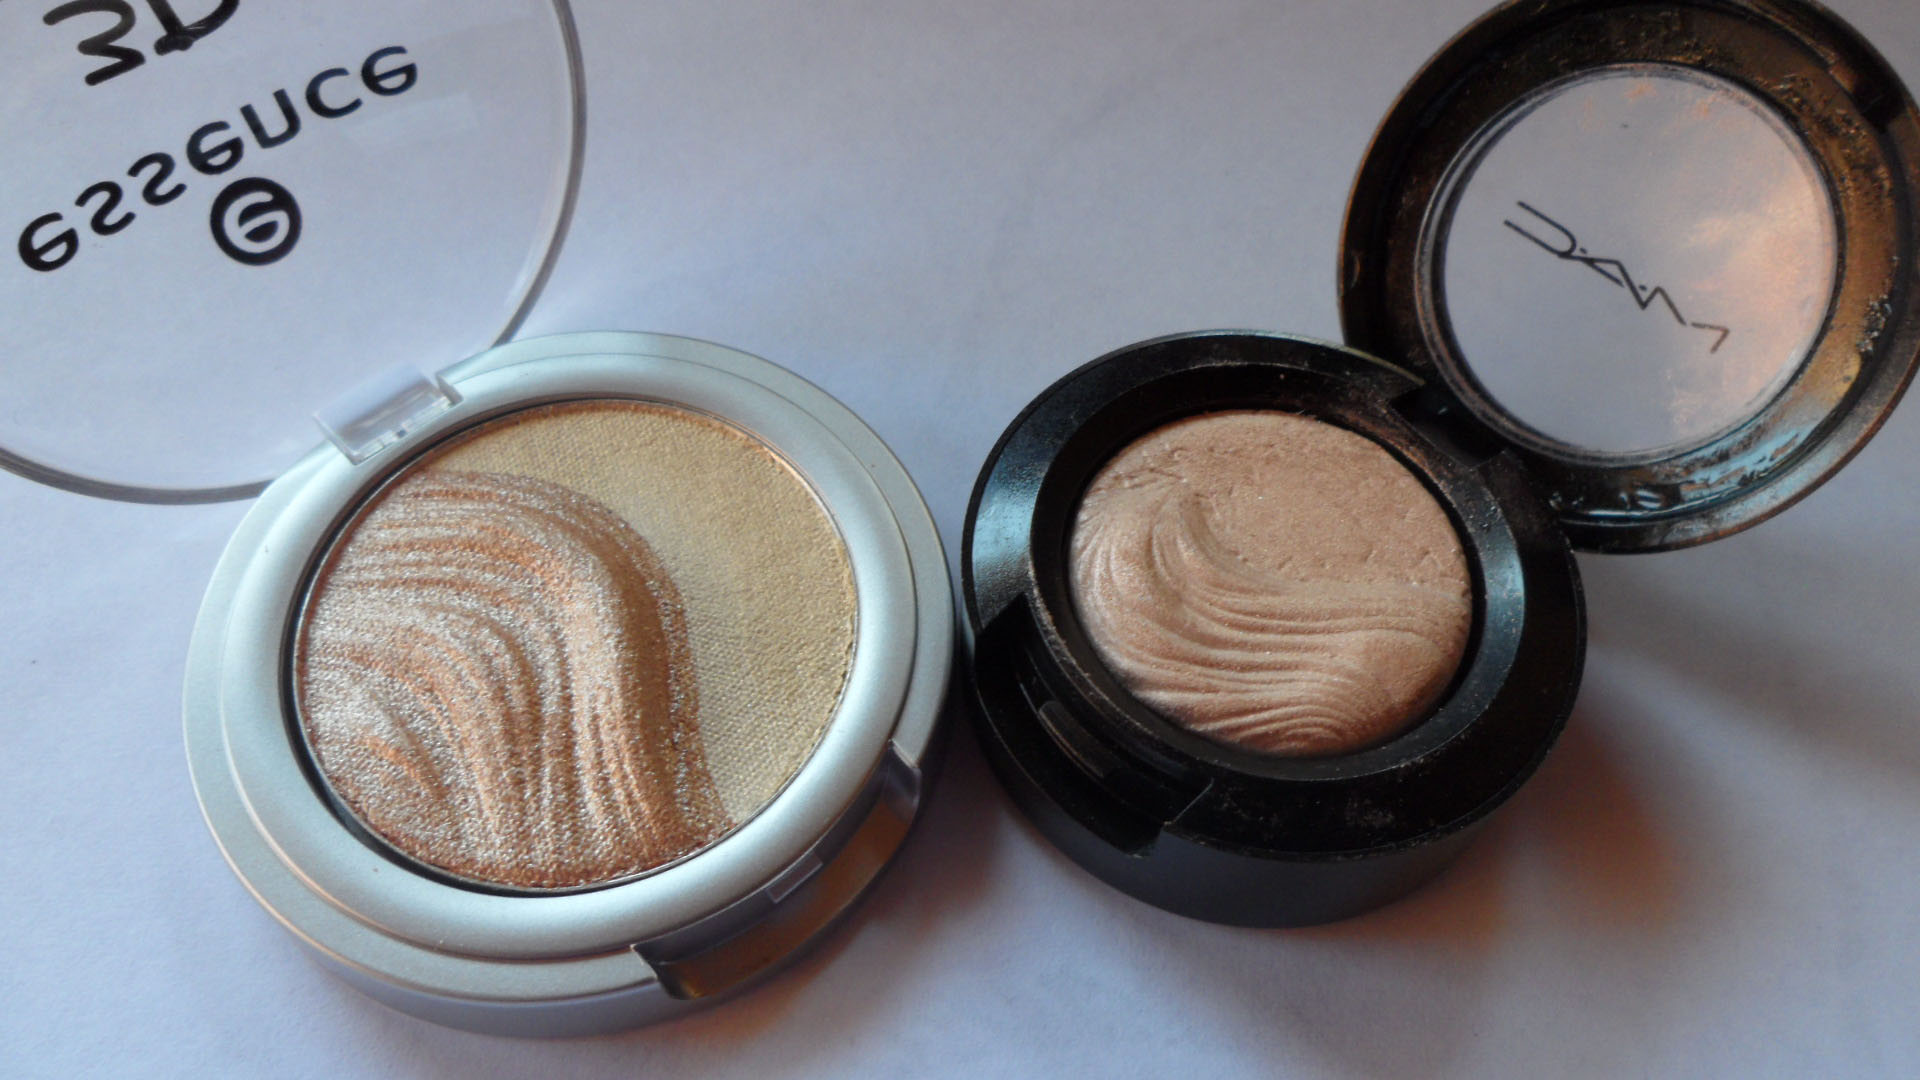 On the left Essence 3D and on the right MAC Extra Dimension eye shadow in A Natural Flirt.